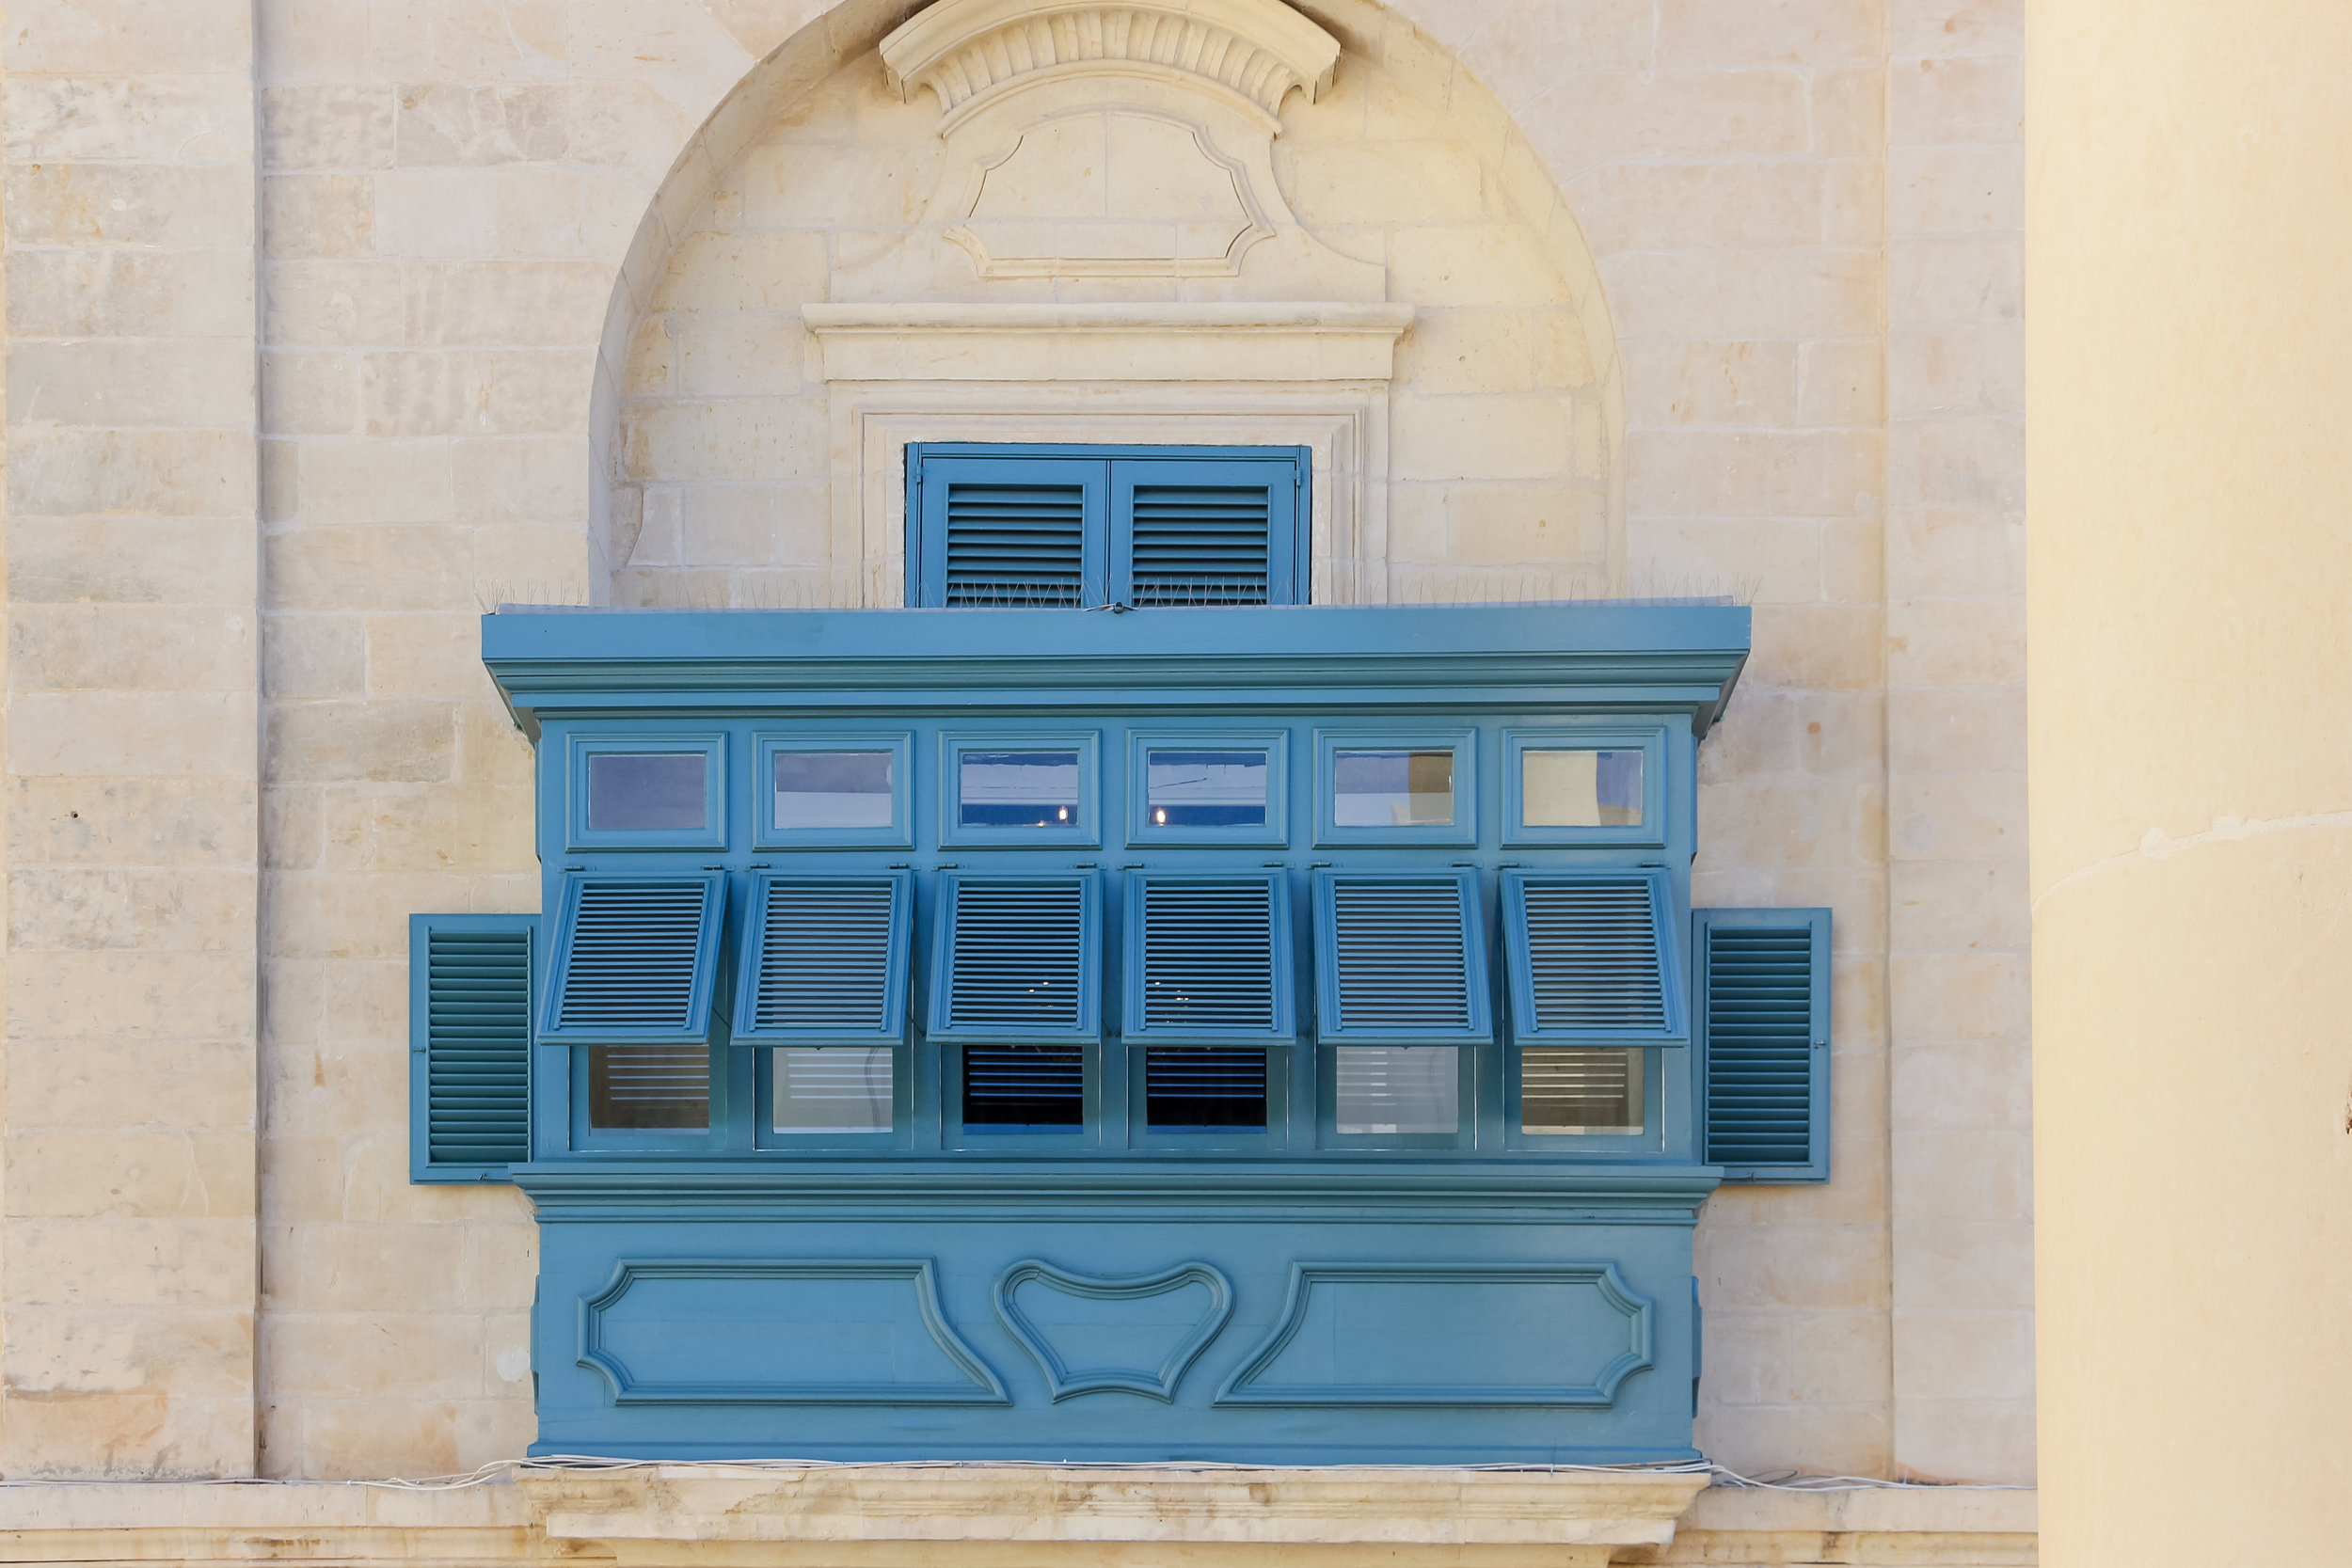 Blue Traditional Maltese Enclosed Wooden BalconY | Old Town of Valletta | - Thinking about appreciation for quality in Malta | Malta, Europe | DoLessGetMoreDone.com | - Canon Architecture Minimal Travel Documentary Photography - search for liveability | Sustainability